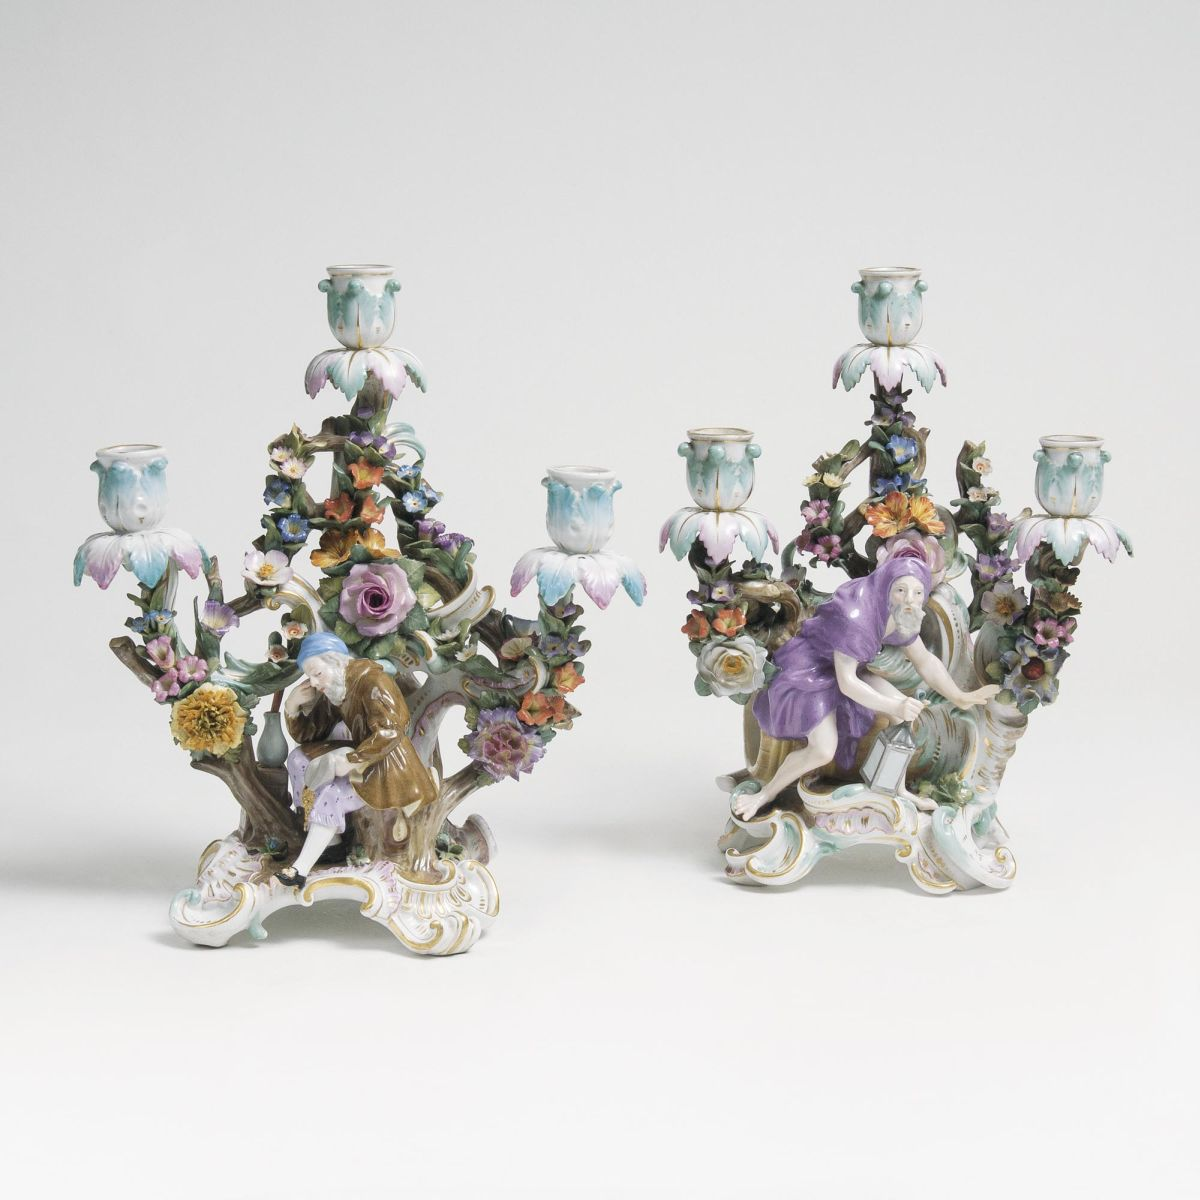 A Pair of figural Chandeliers 'Diogenes and Paracelsius'